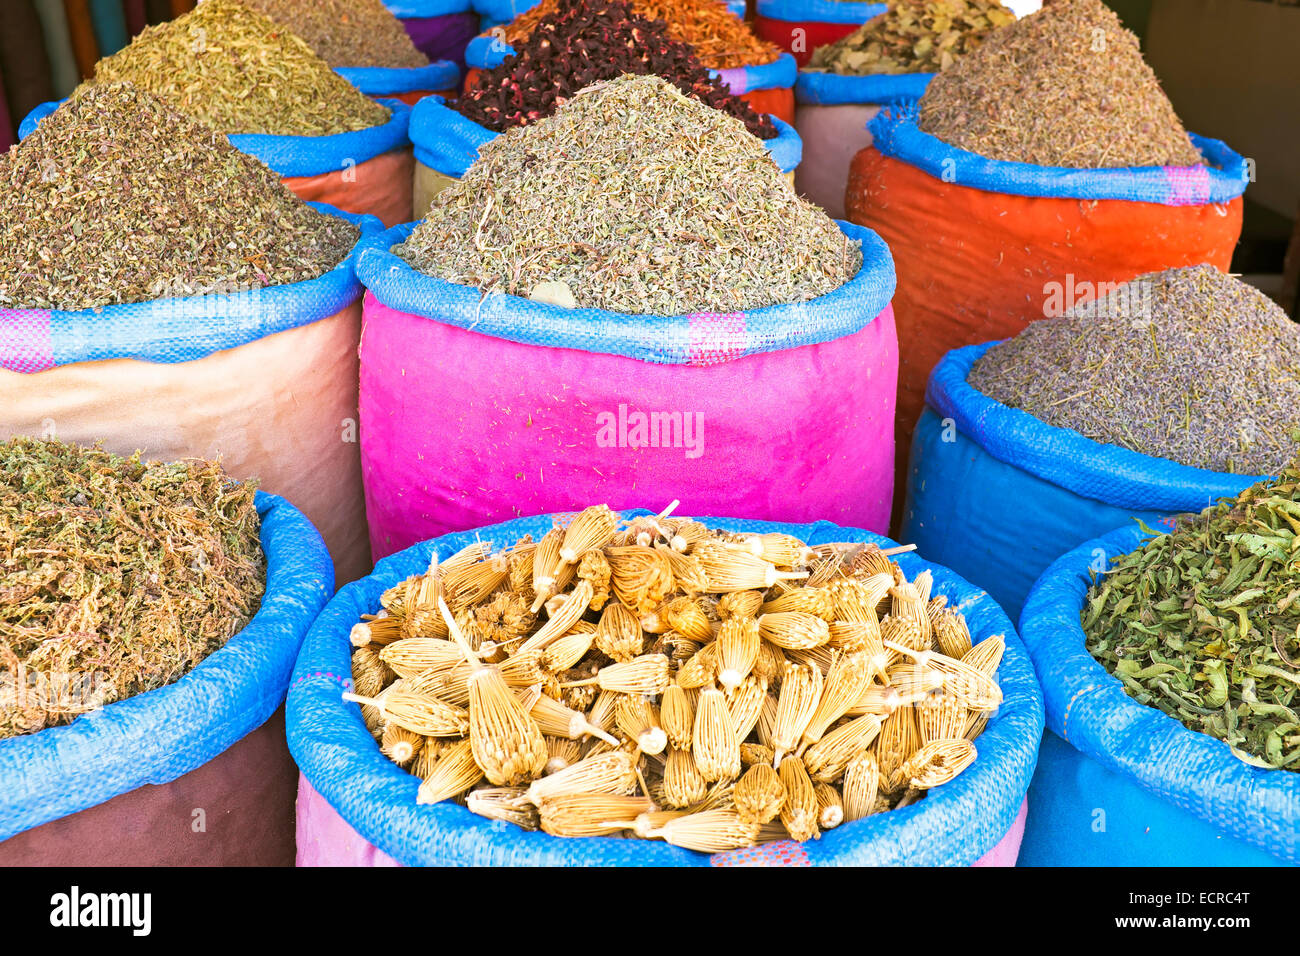 Spices at the market in Morocco Stock Photo